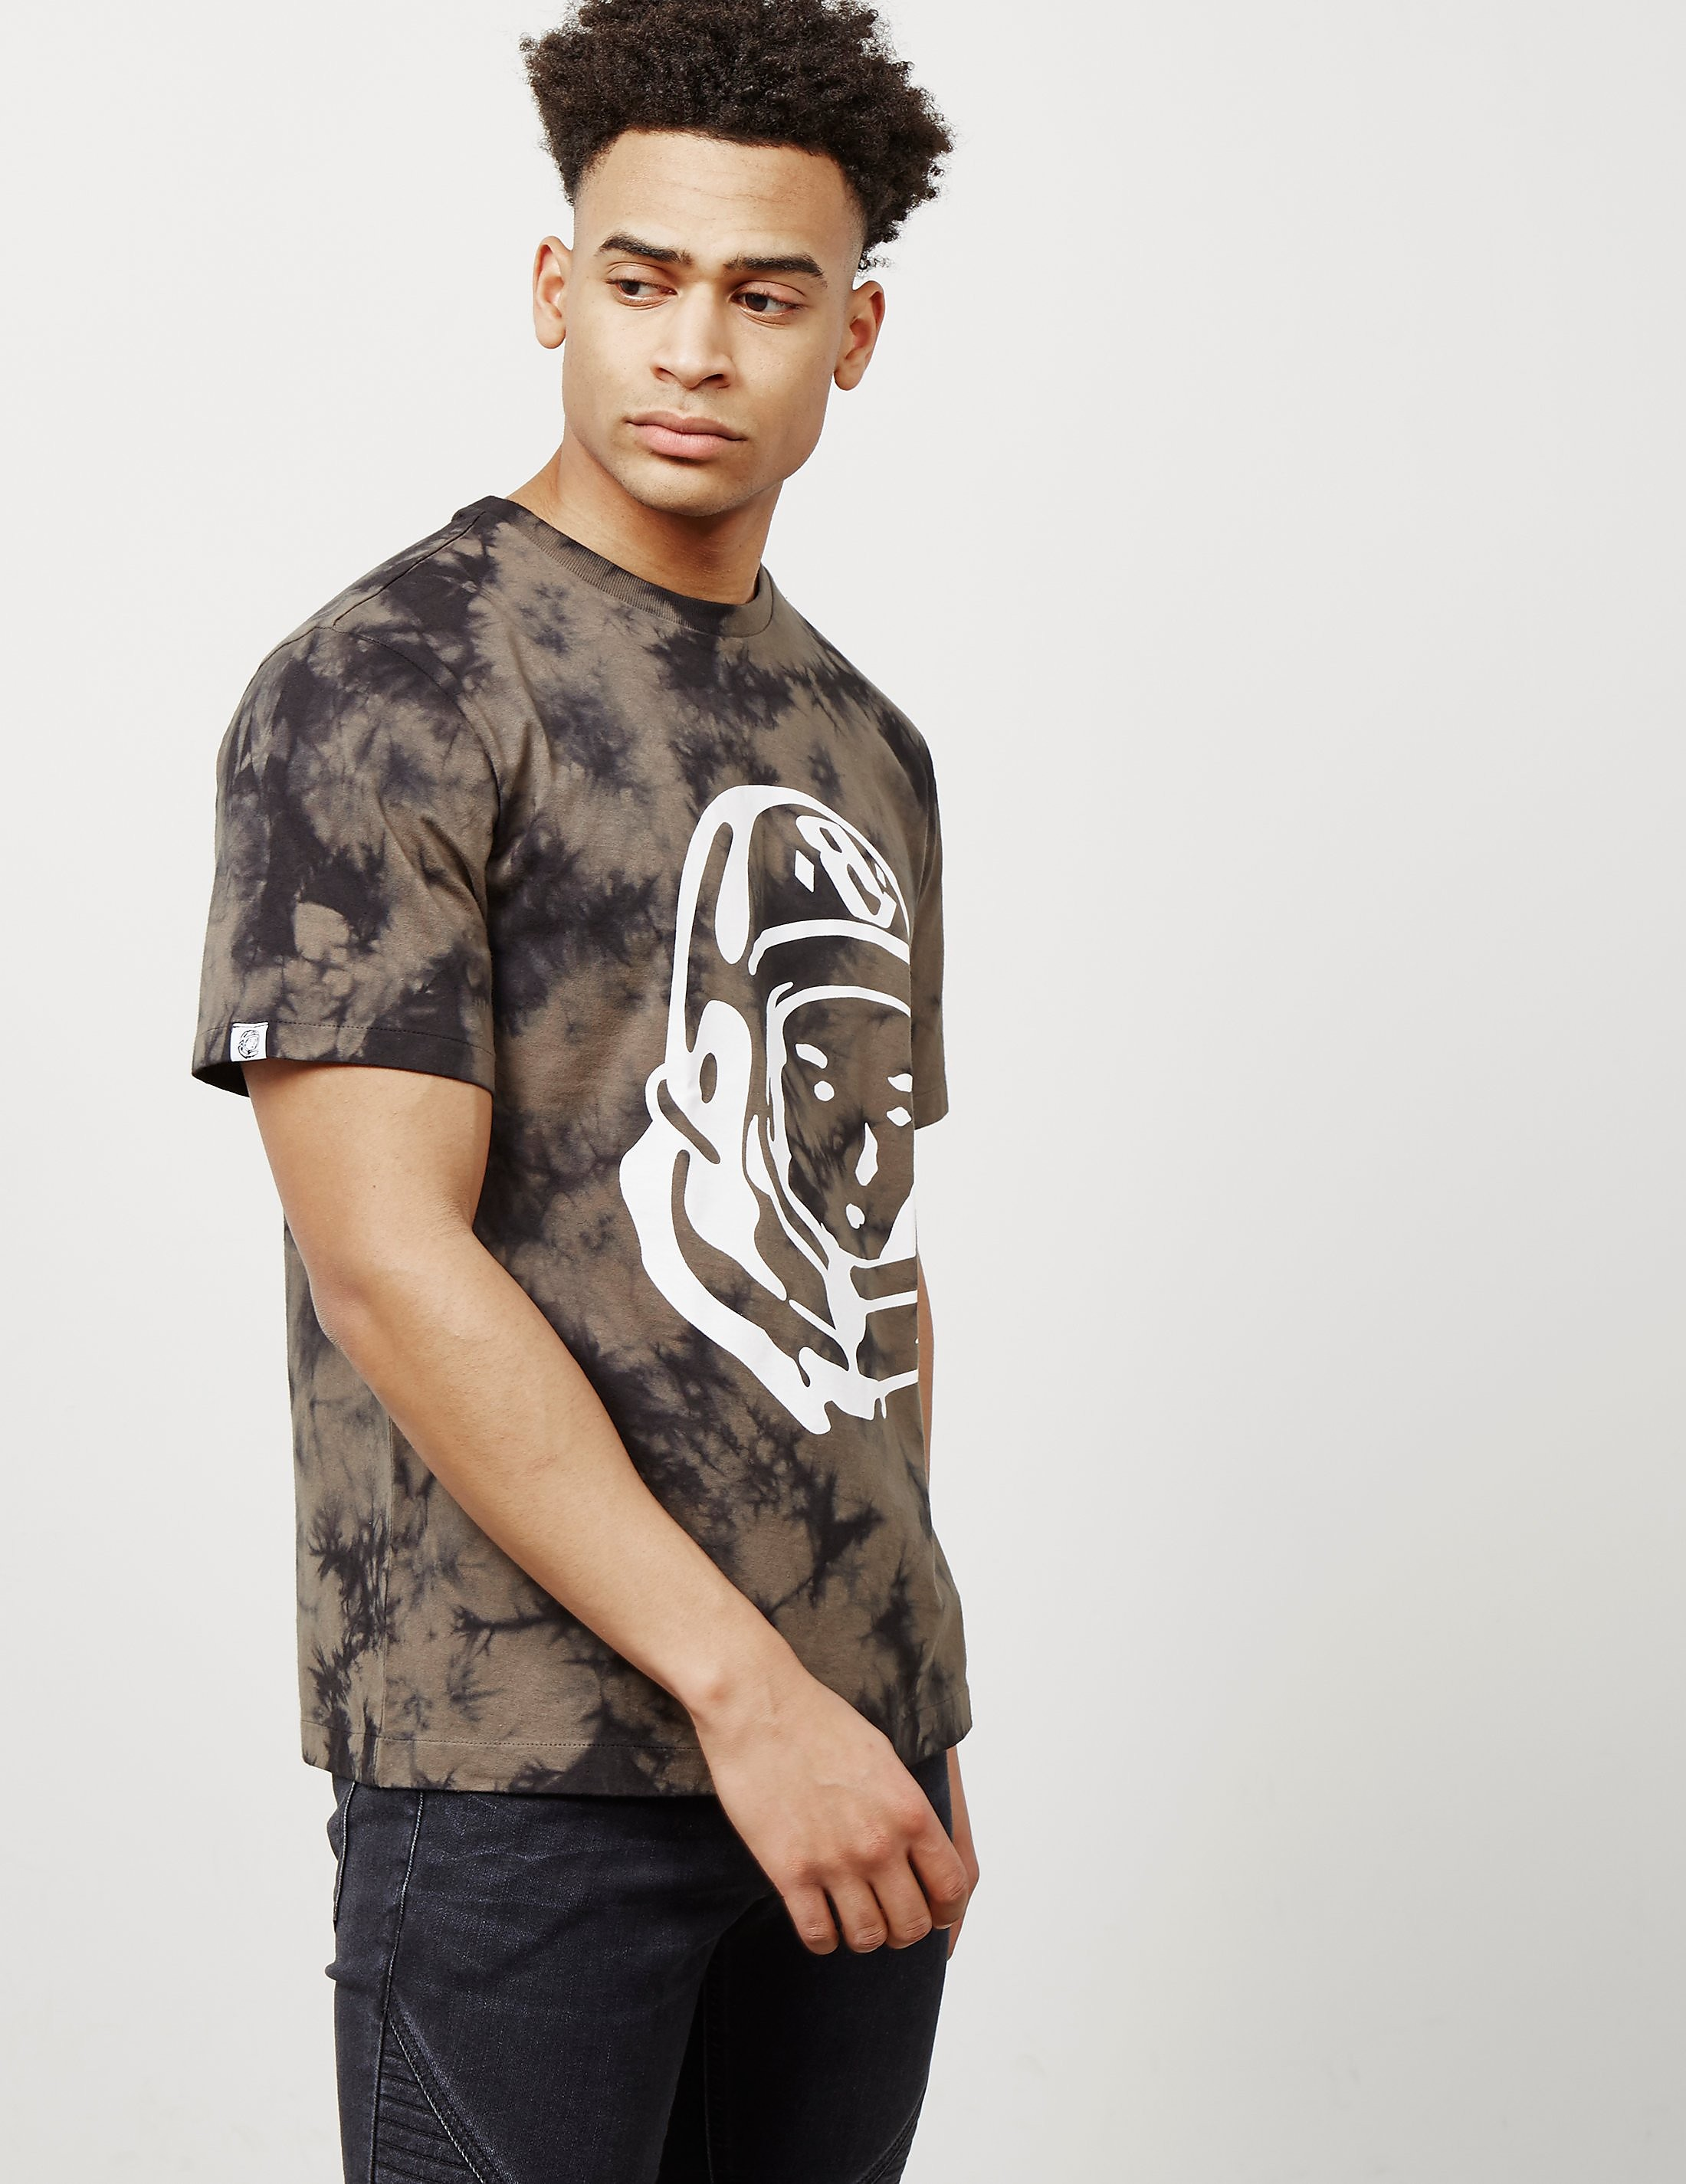 Billionaire Boys Club Tie Dye Short Sleeve T-Shirt - Online Exclusive